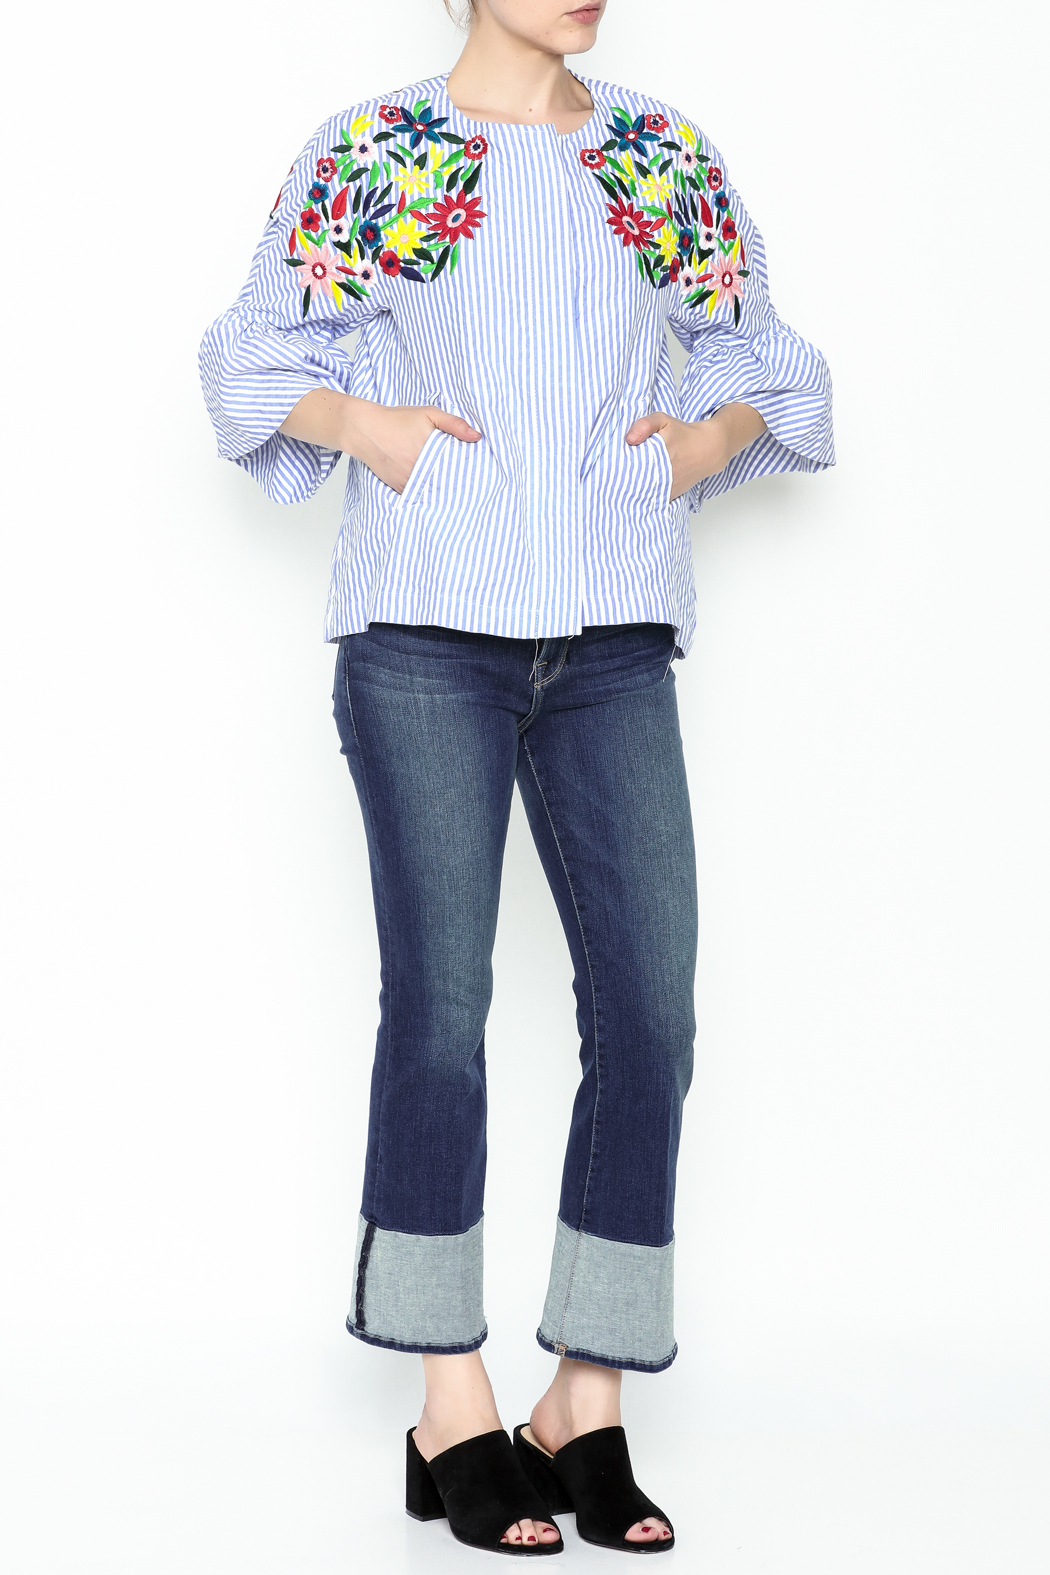 Fashion Pickle Ferera Embroidered Blouse - Side Cropped Image